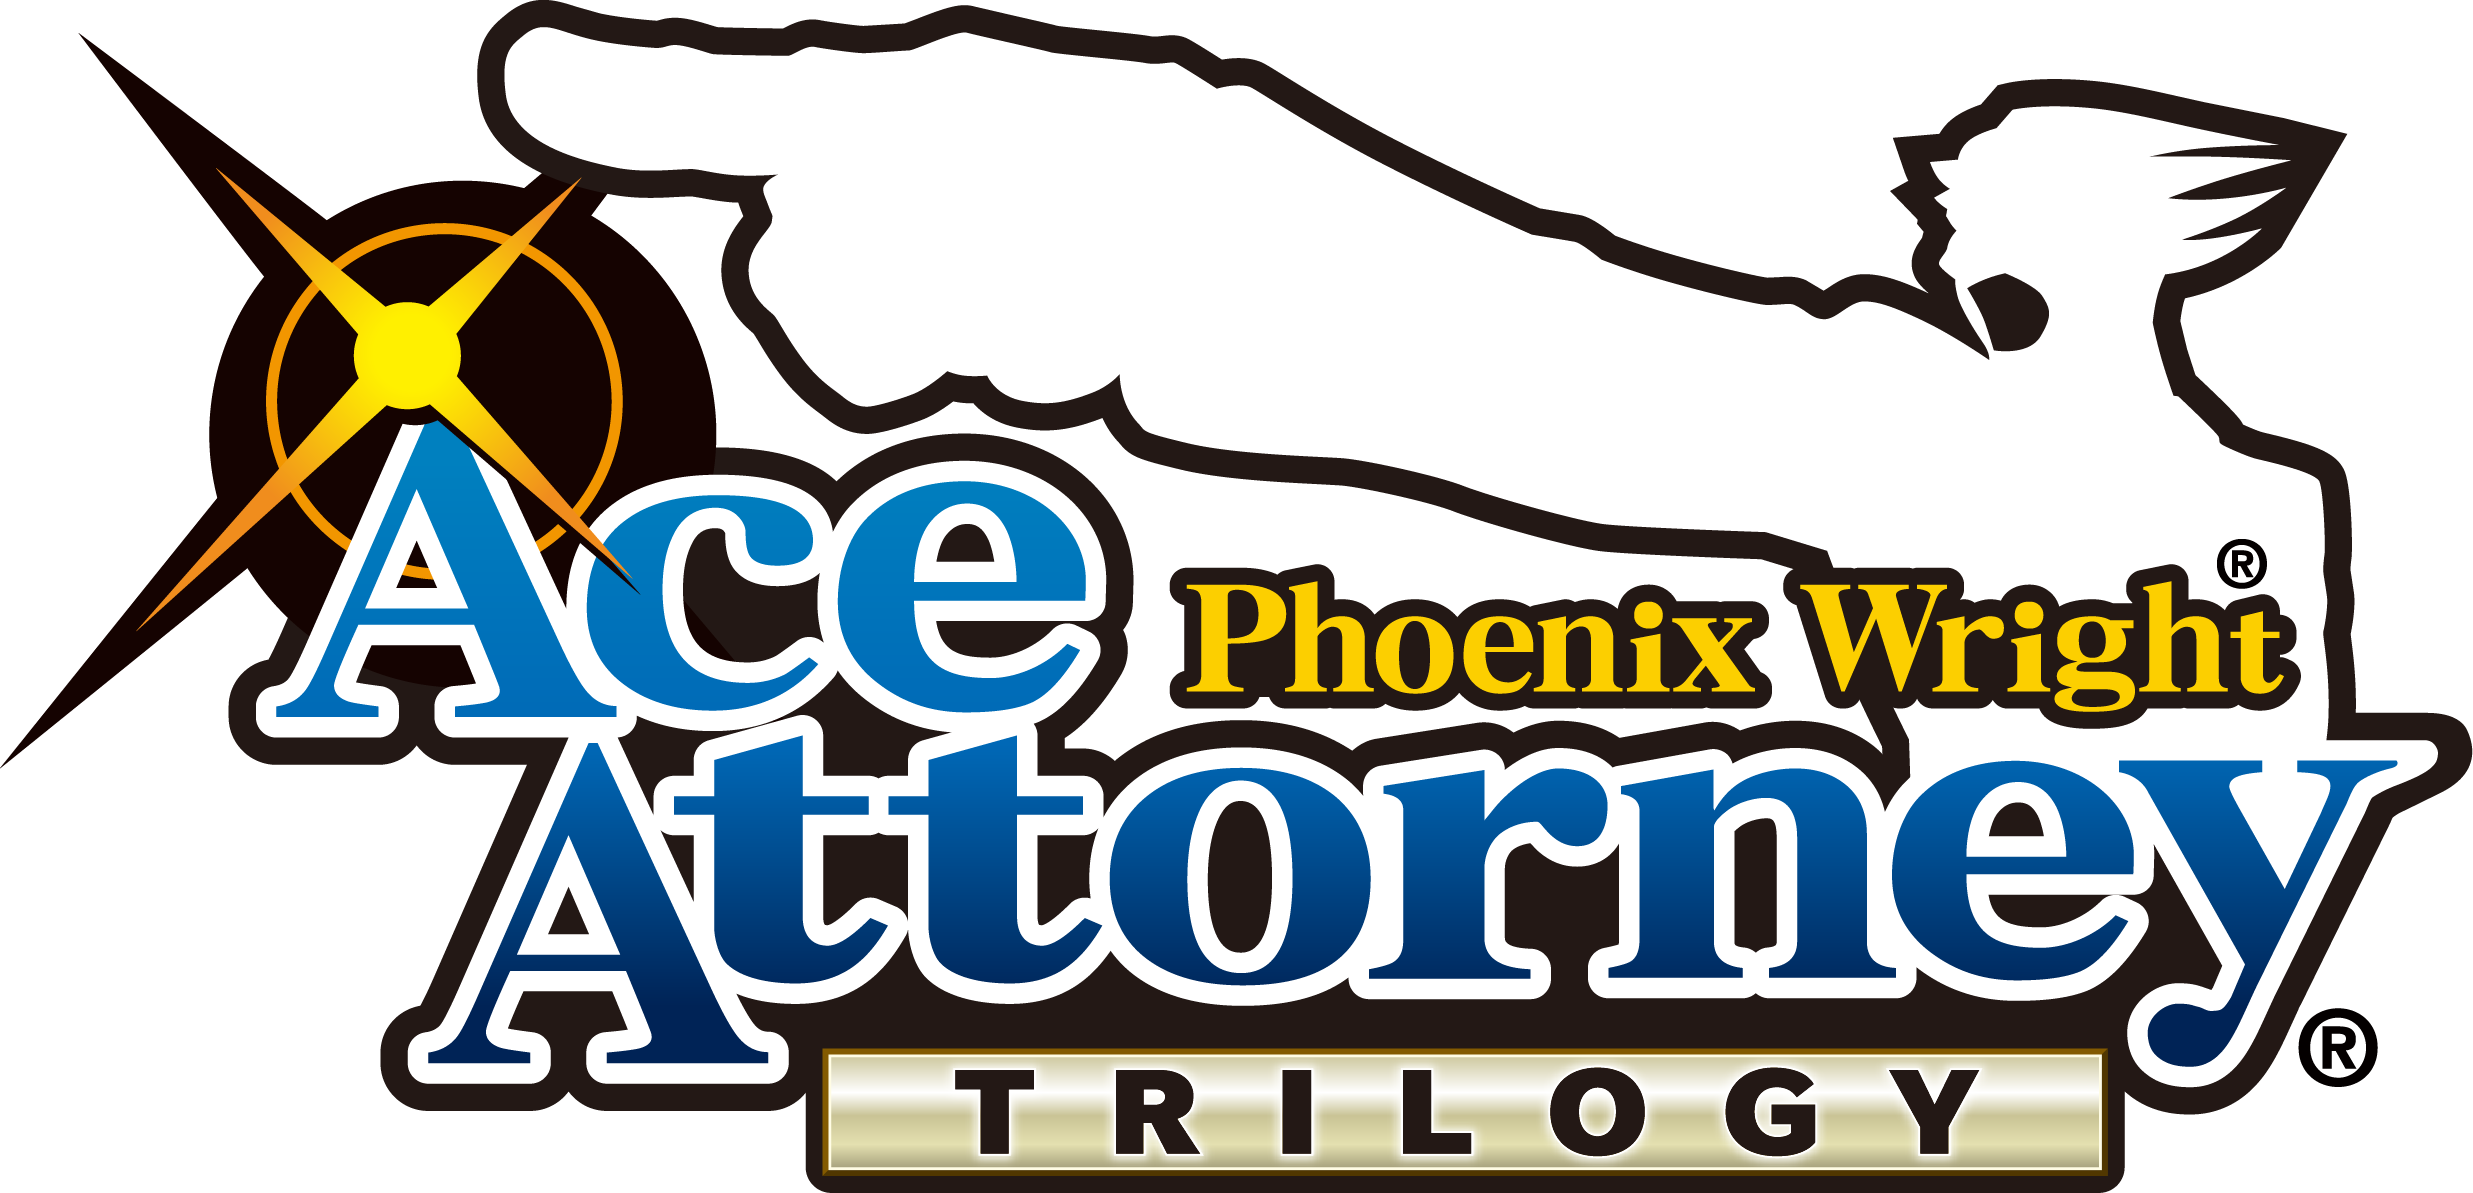 Phoenix Wright: Ace Attorney Backgrounds, Compatible - PC, Mobile, Gadgets| 2473x1193 px